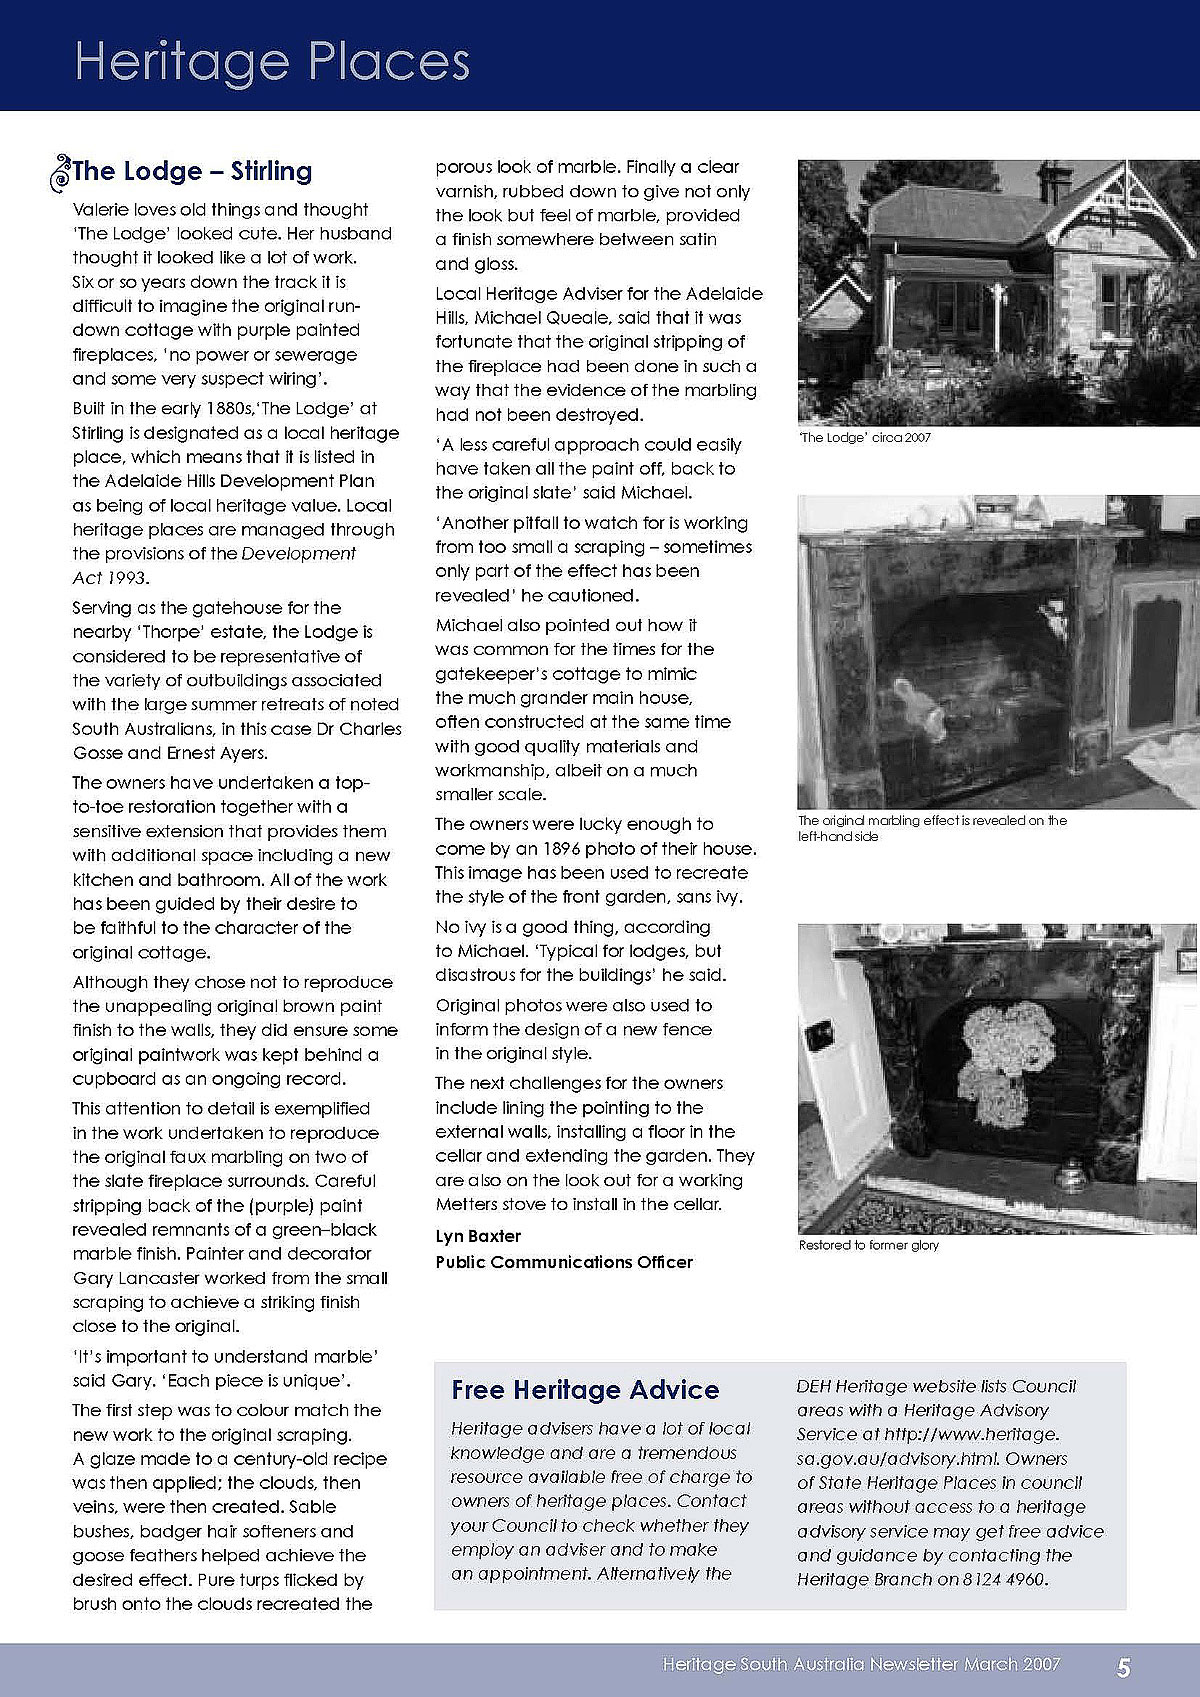 Heritage SA Newsletter March 2007, Page 5